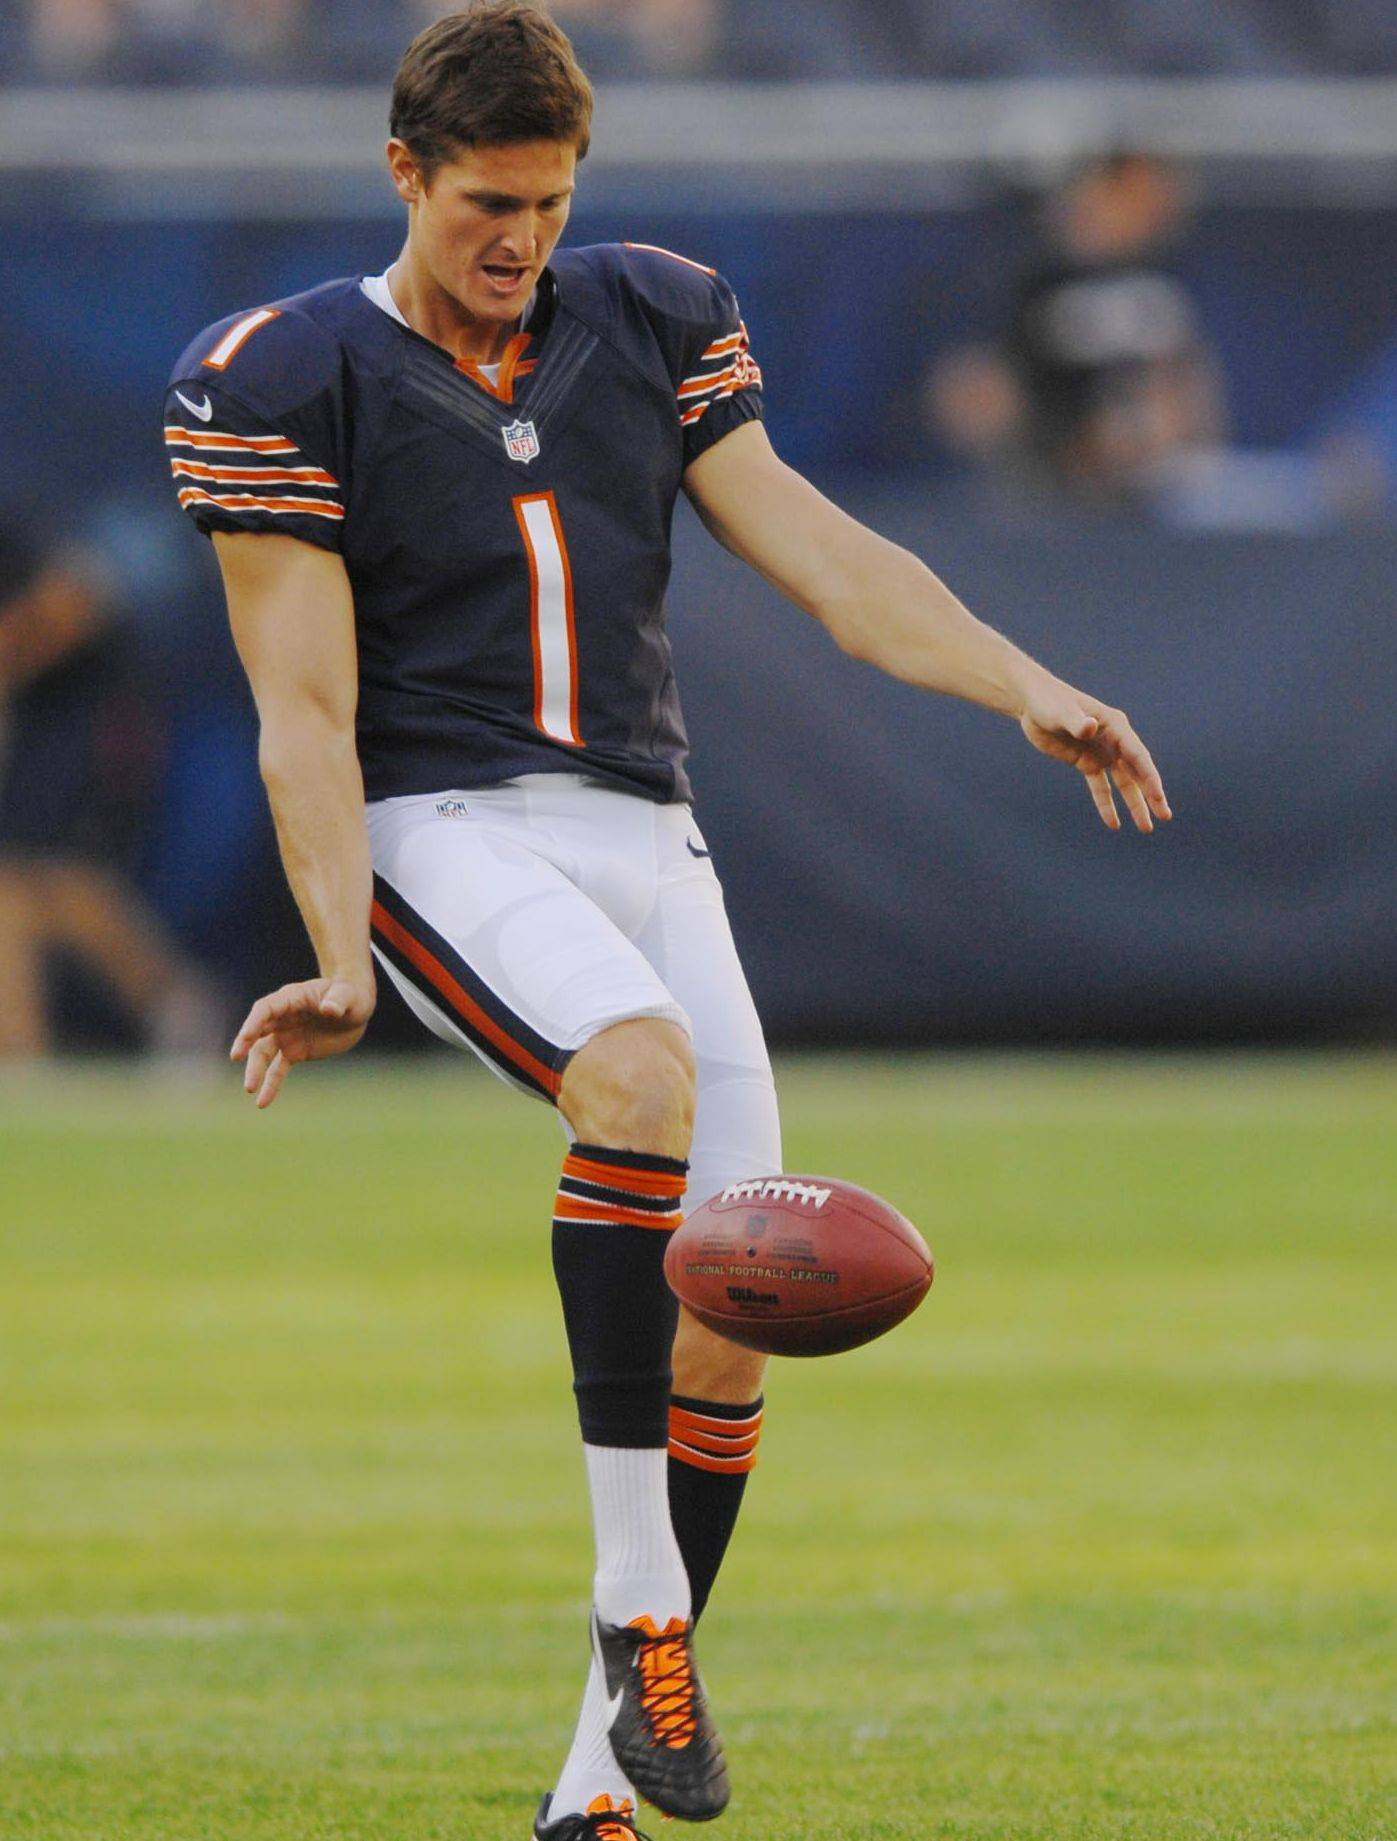 With Bears punter Adam Podlesh out with a hip flexor, backup Ryan Quigley (above) will get an opportunity Friday night against the Giants.